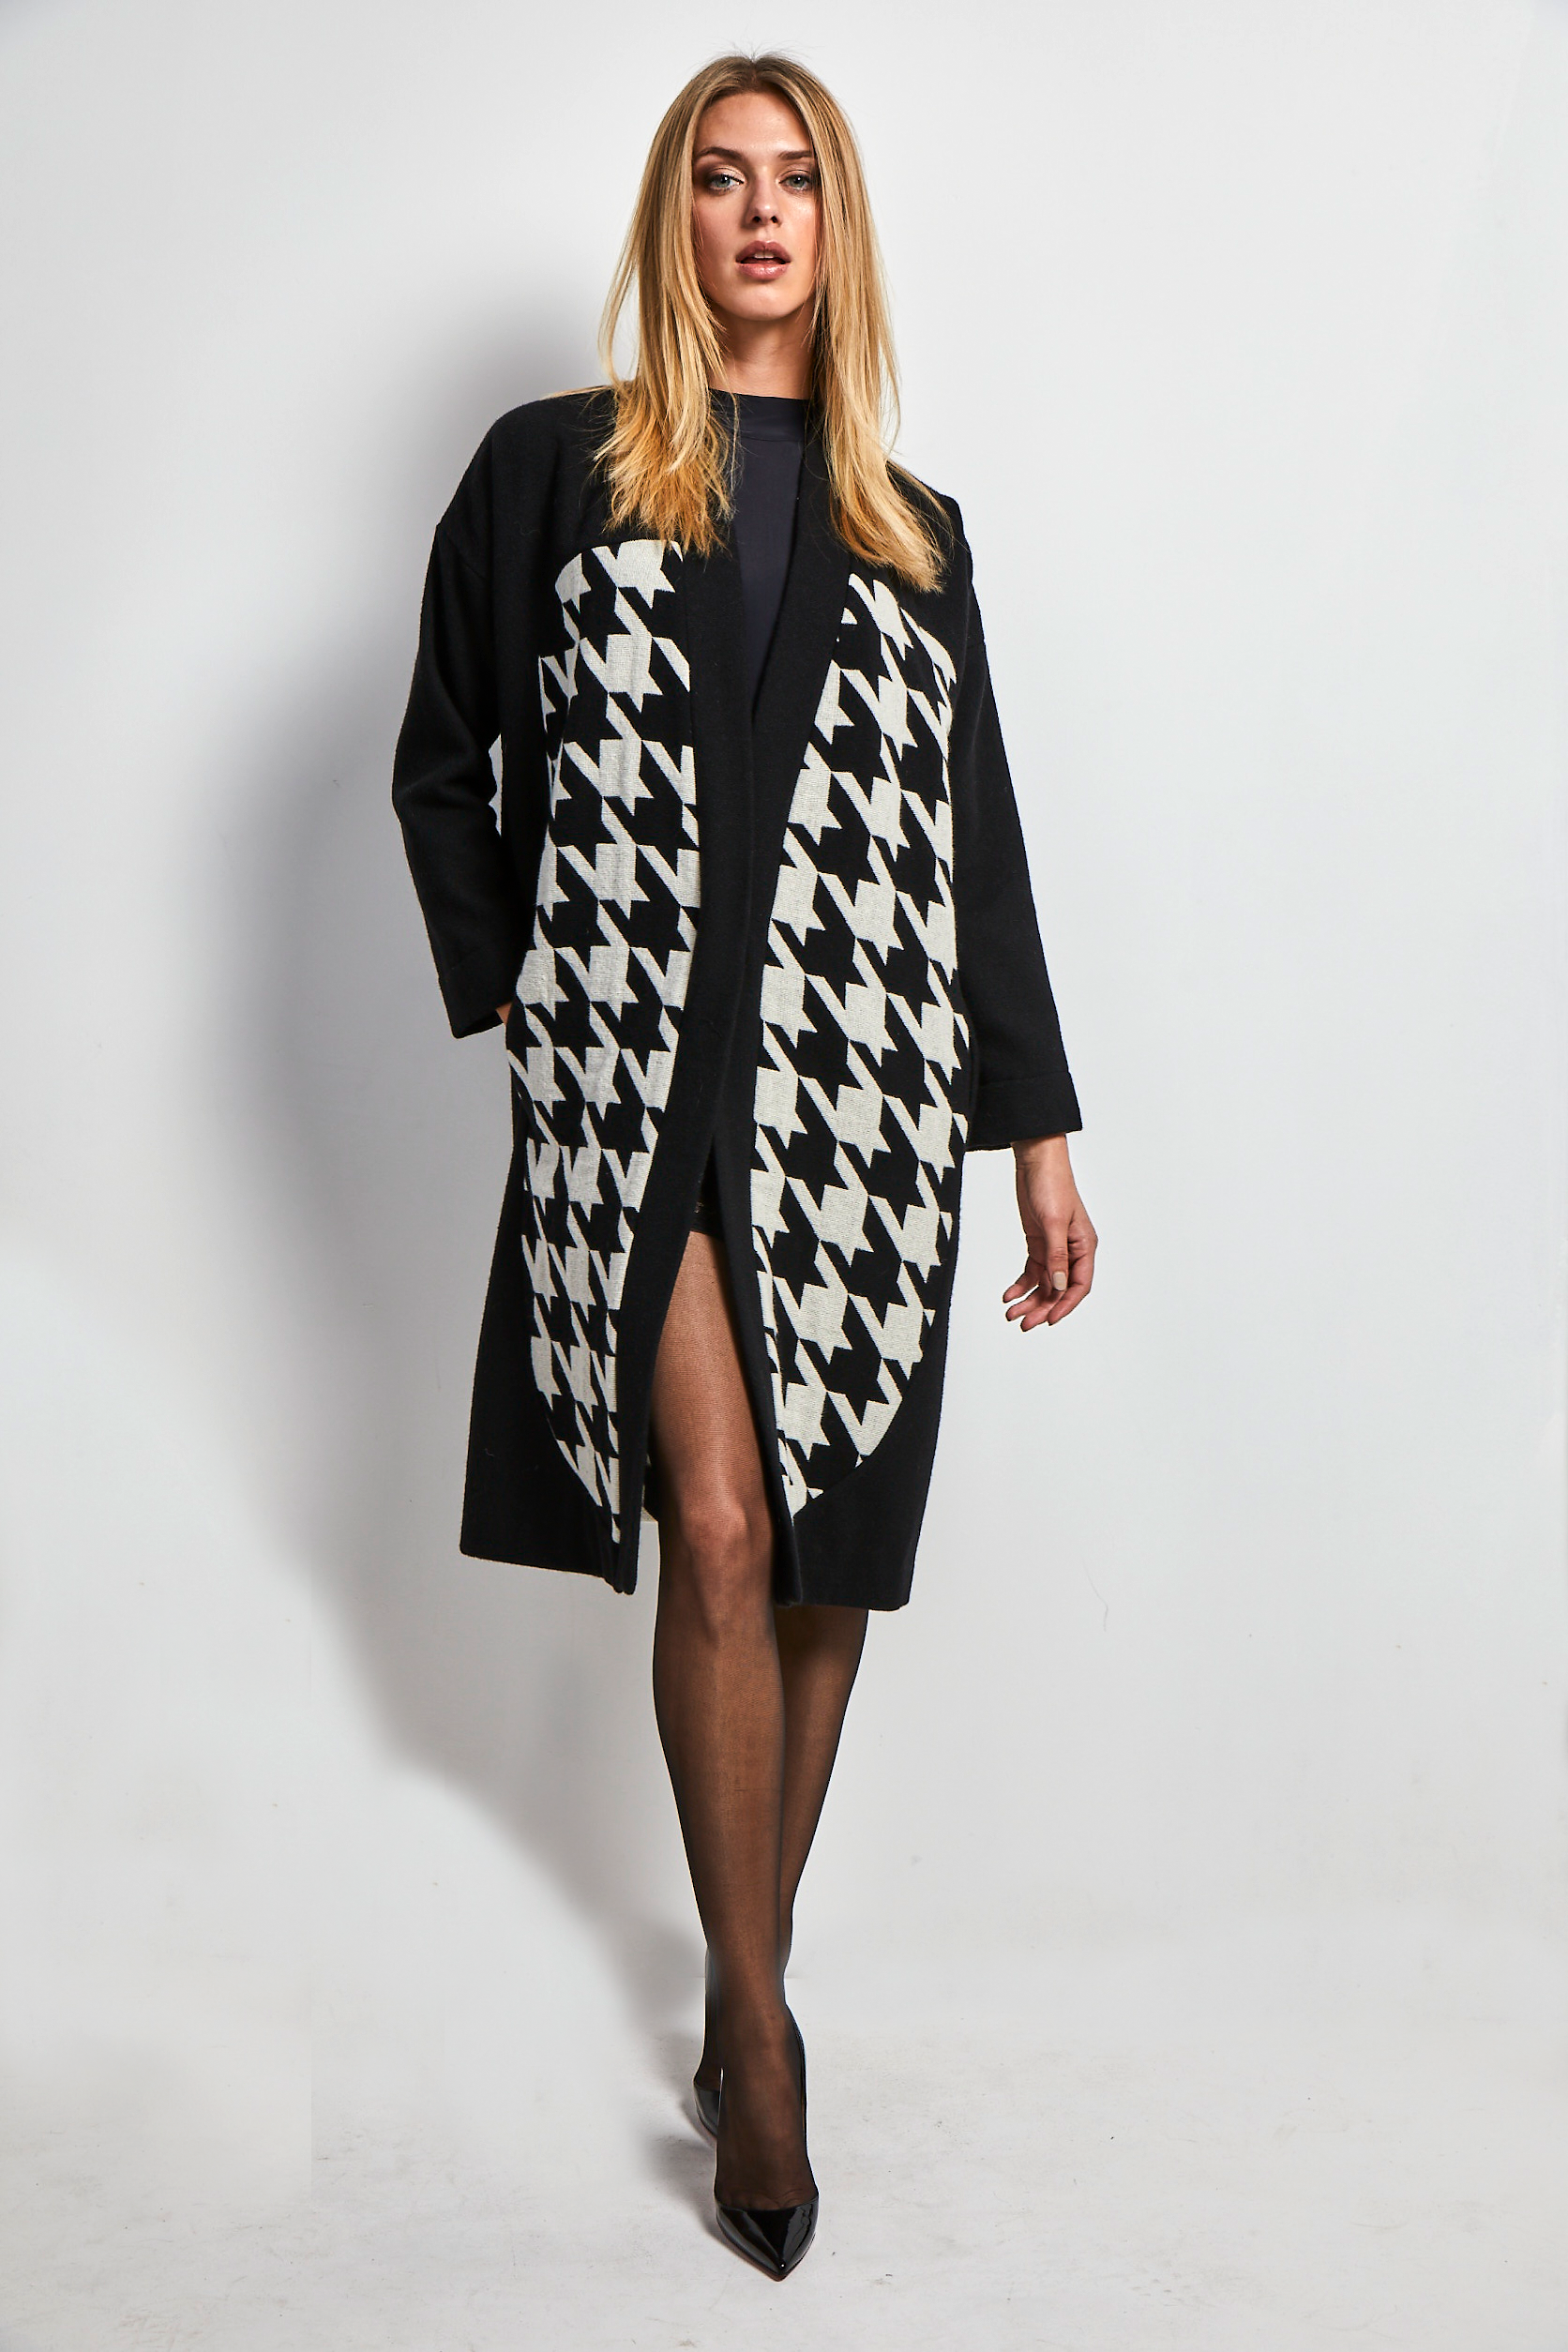 Long black & white cardigan